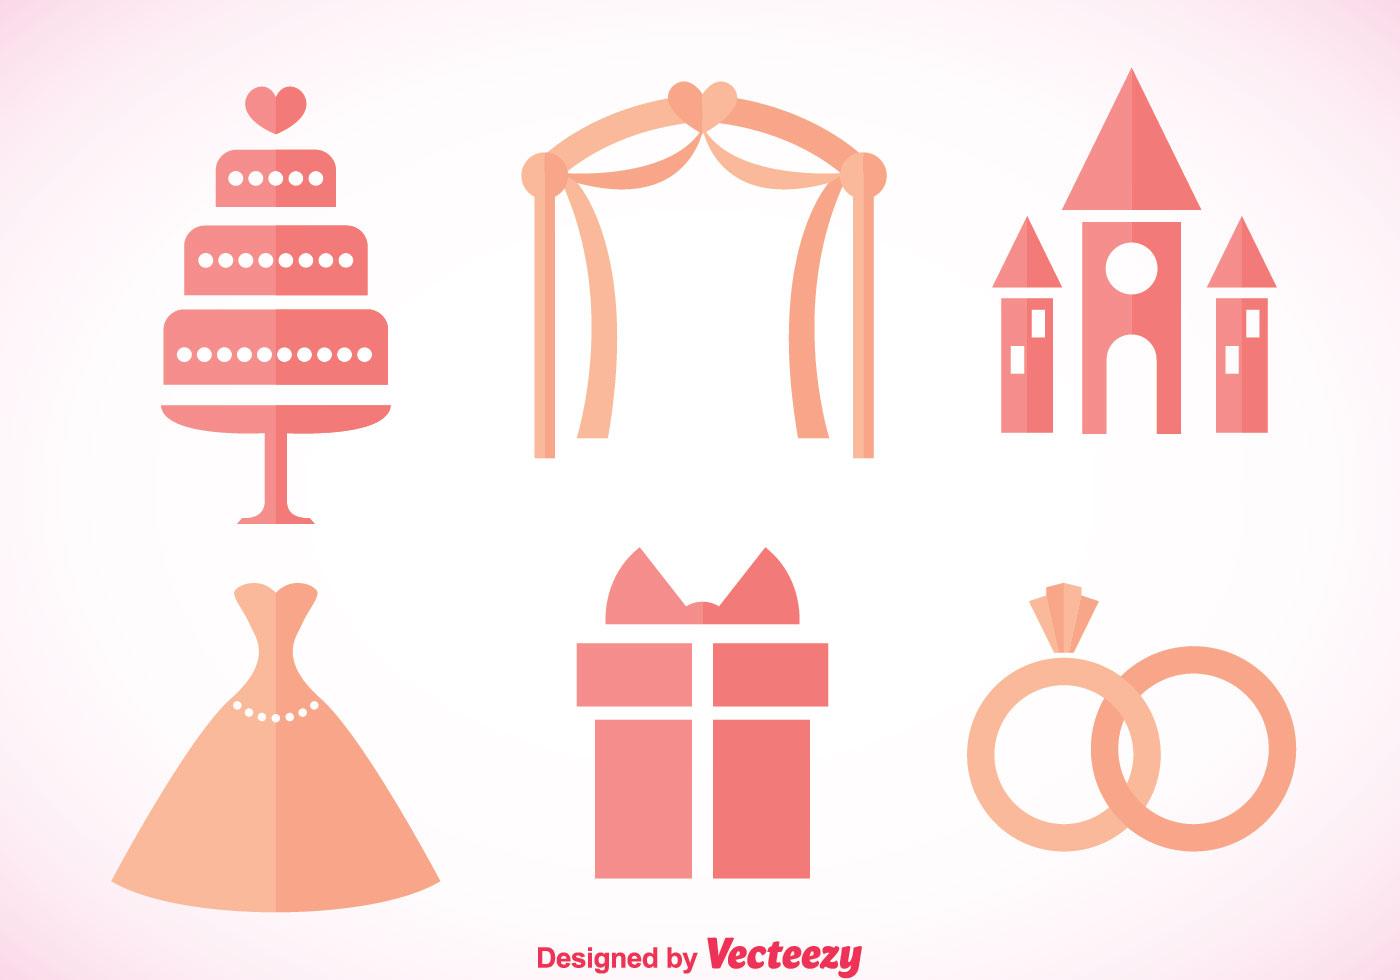 Wedding Pink Icons - Download Free Vector Art, Stock Graphics & Images: www.vecteezy.com/vector-art/113832-wedding-pink-icons